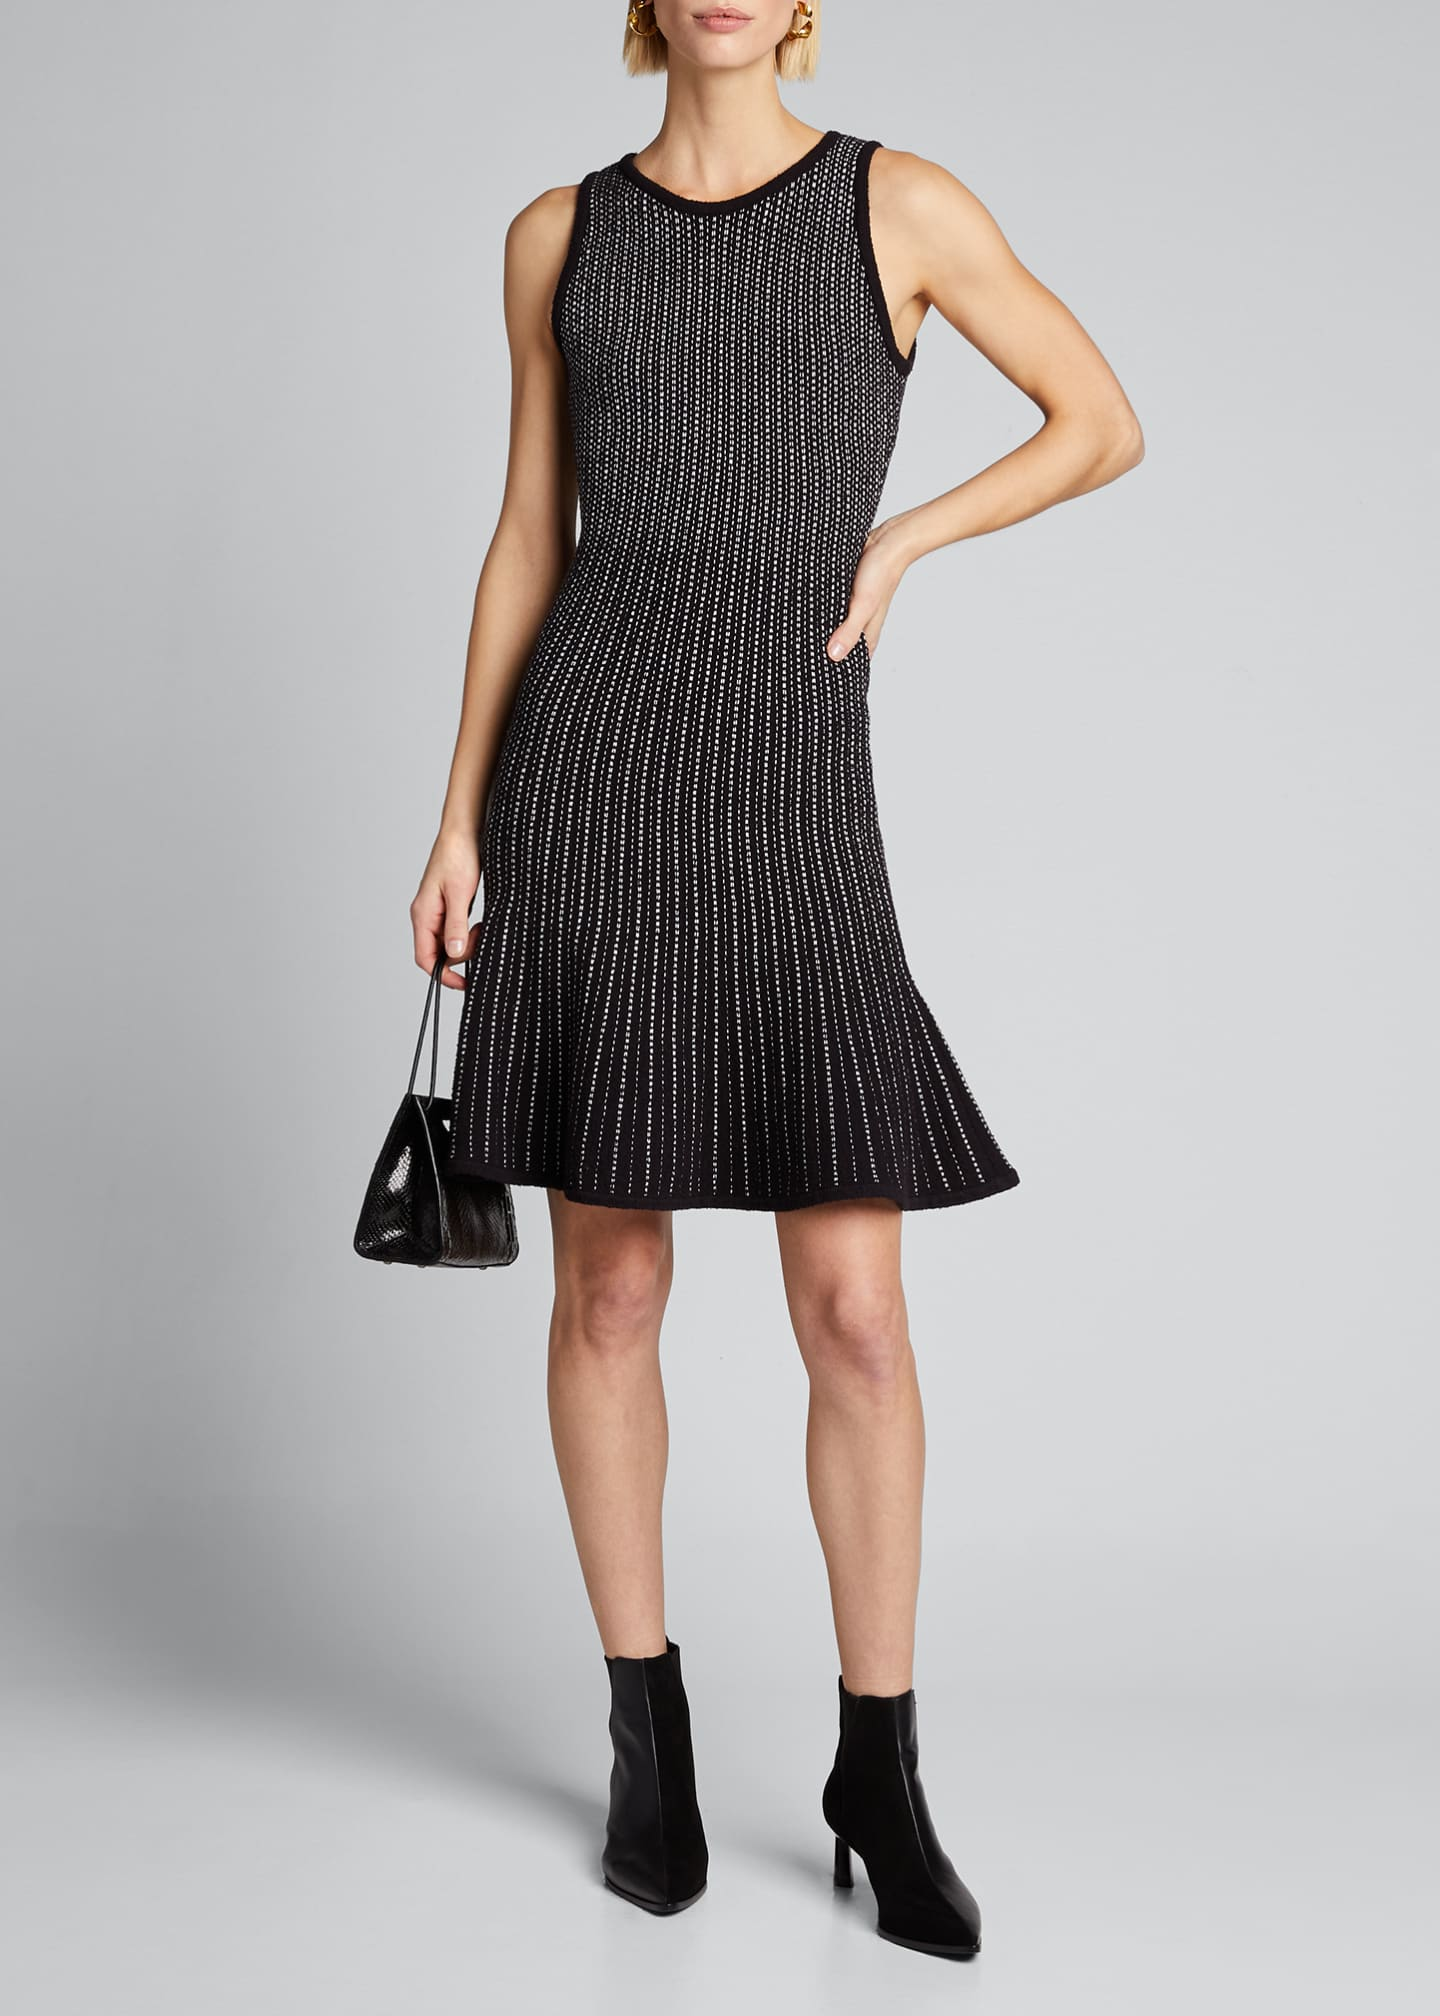 Image 1 of 5: Tweed Sleeveless Fit & Flow Dress